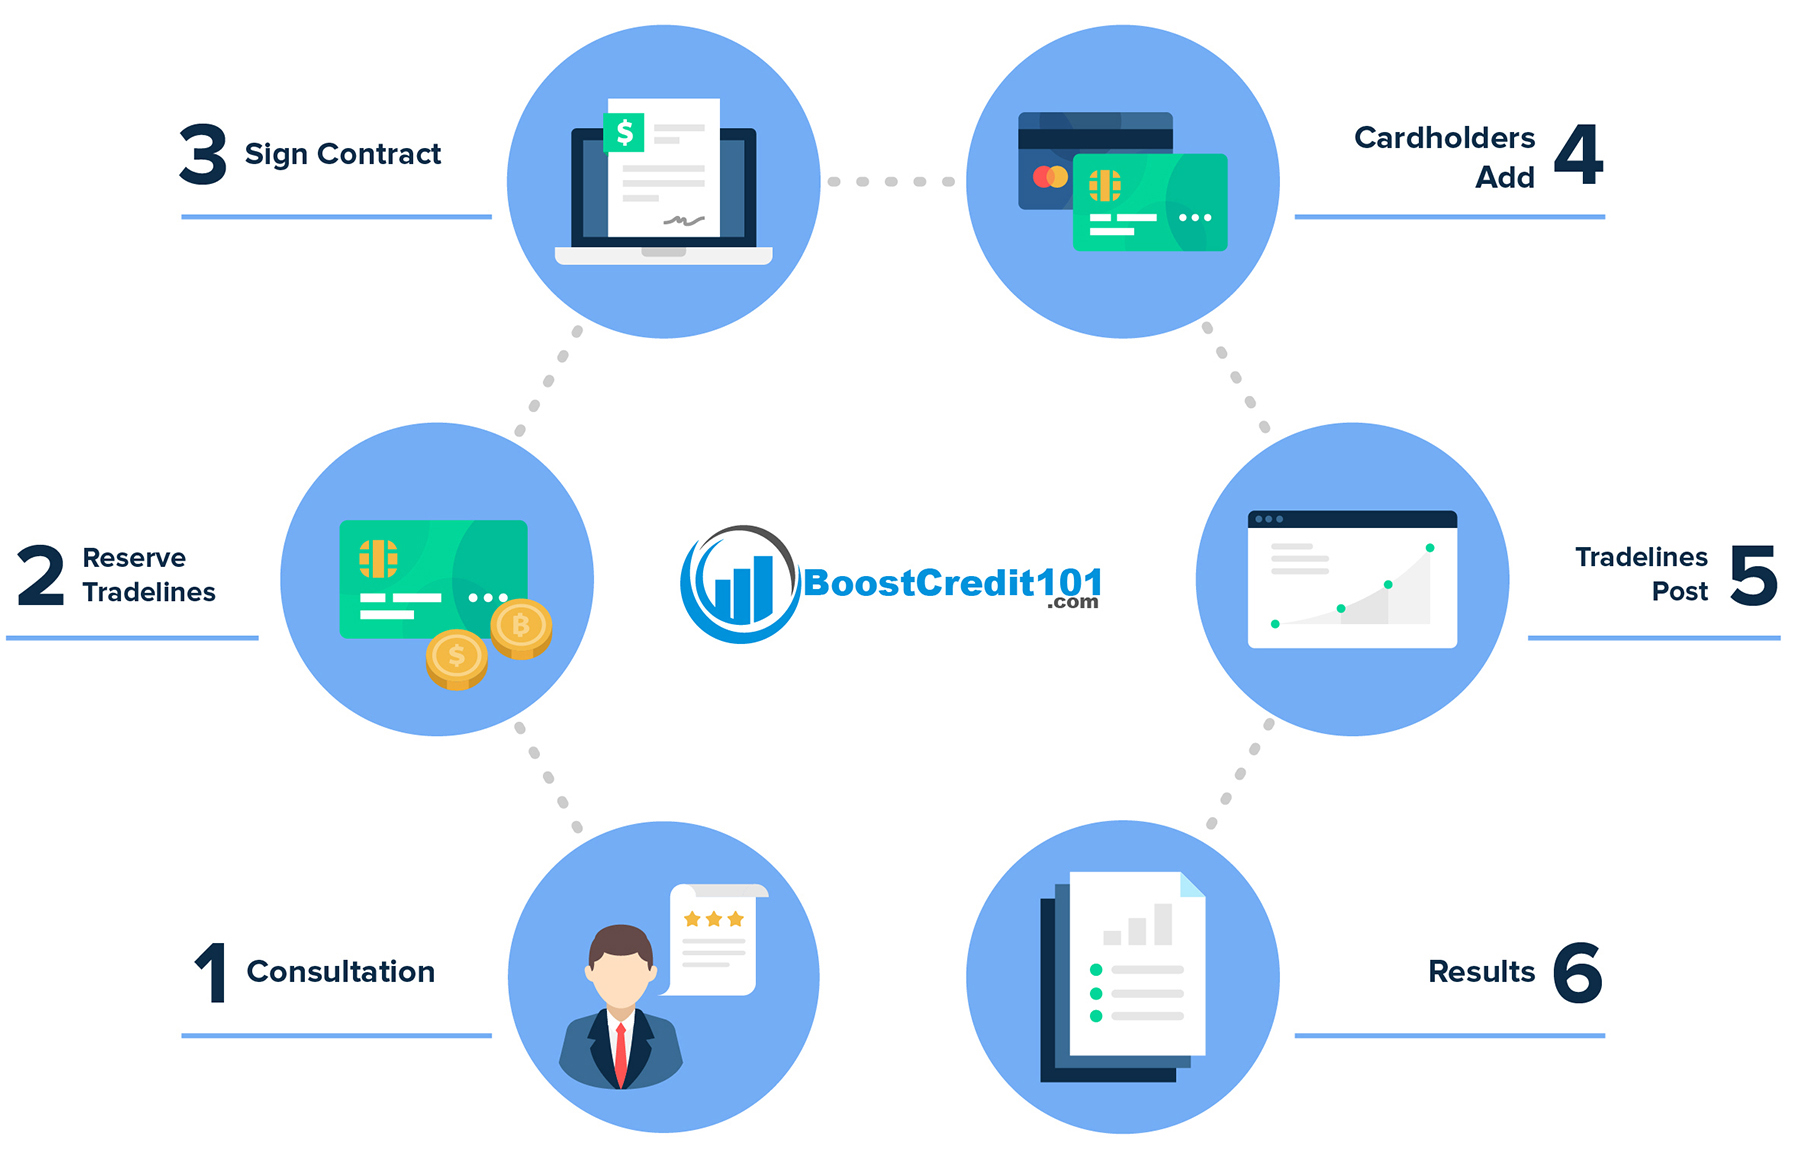 Boost Credit 101 Tradelines